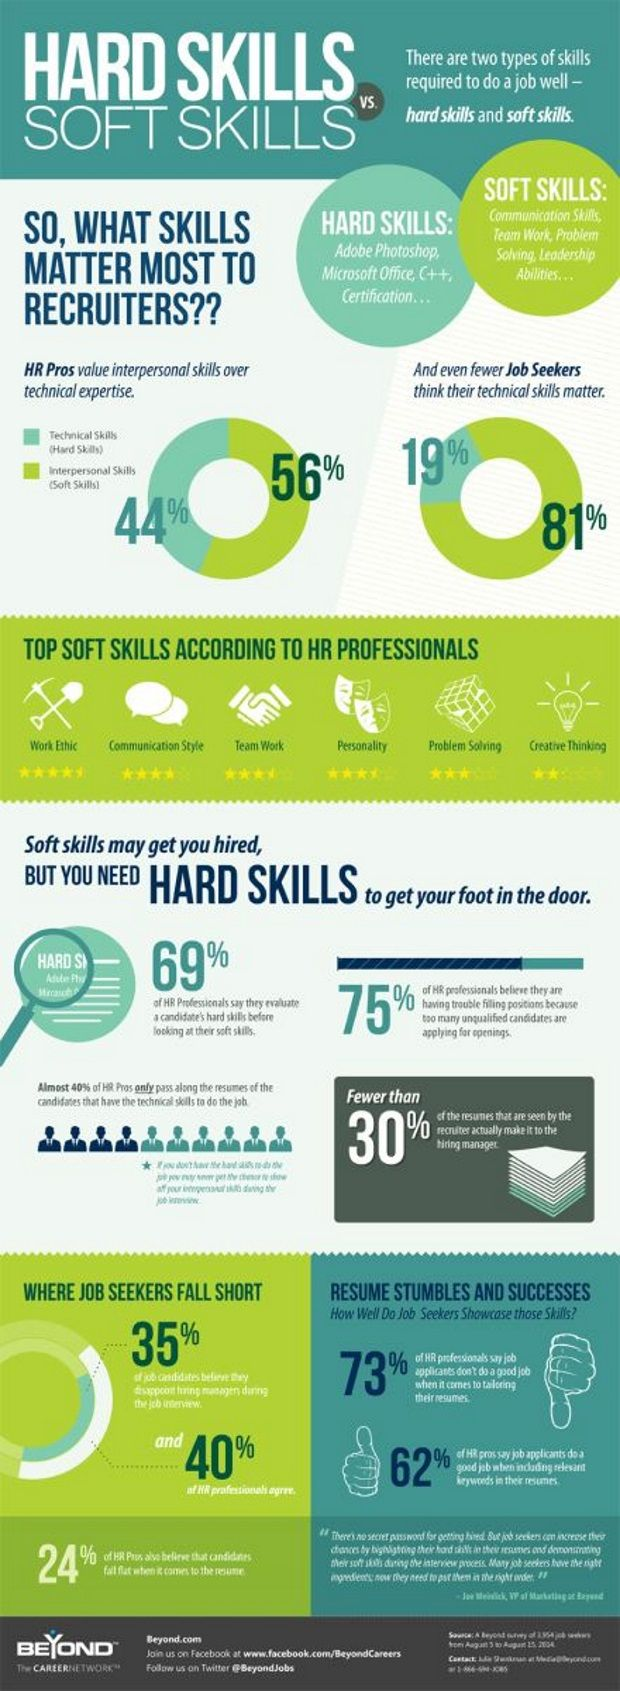 best images about career resume banking resume hard versus soft skills soft skills are as important as any other skills to develop